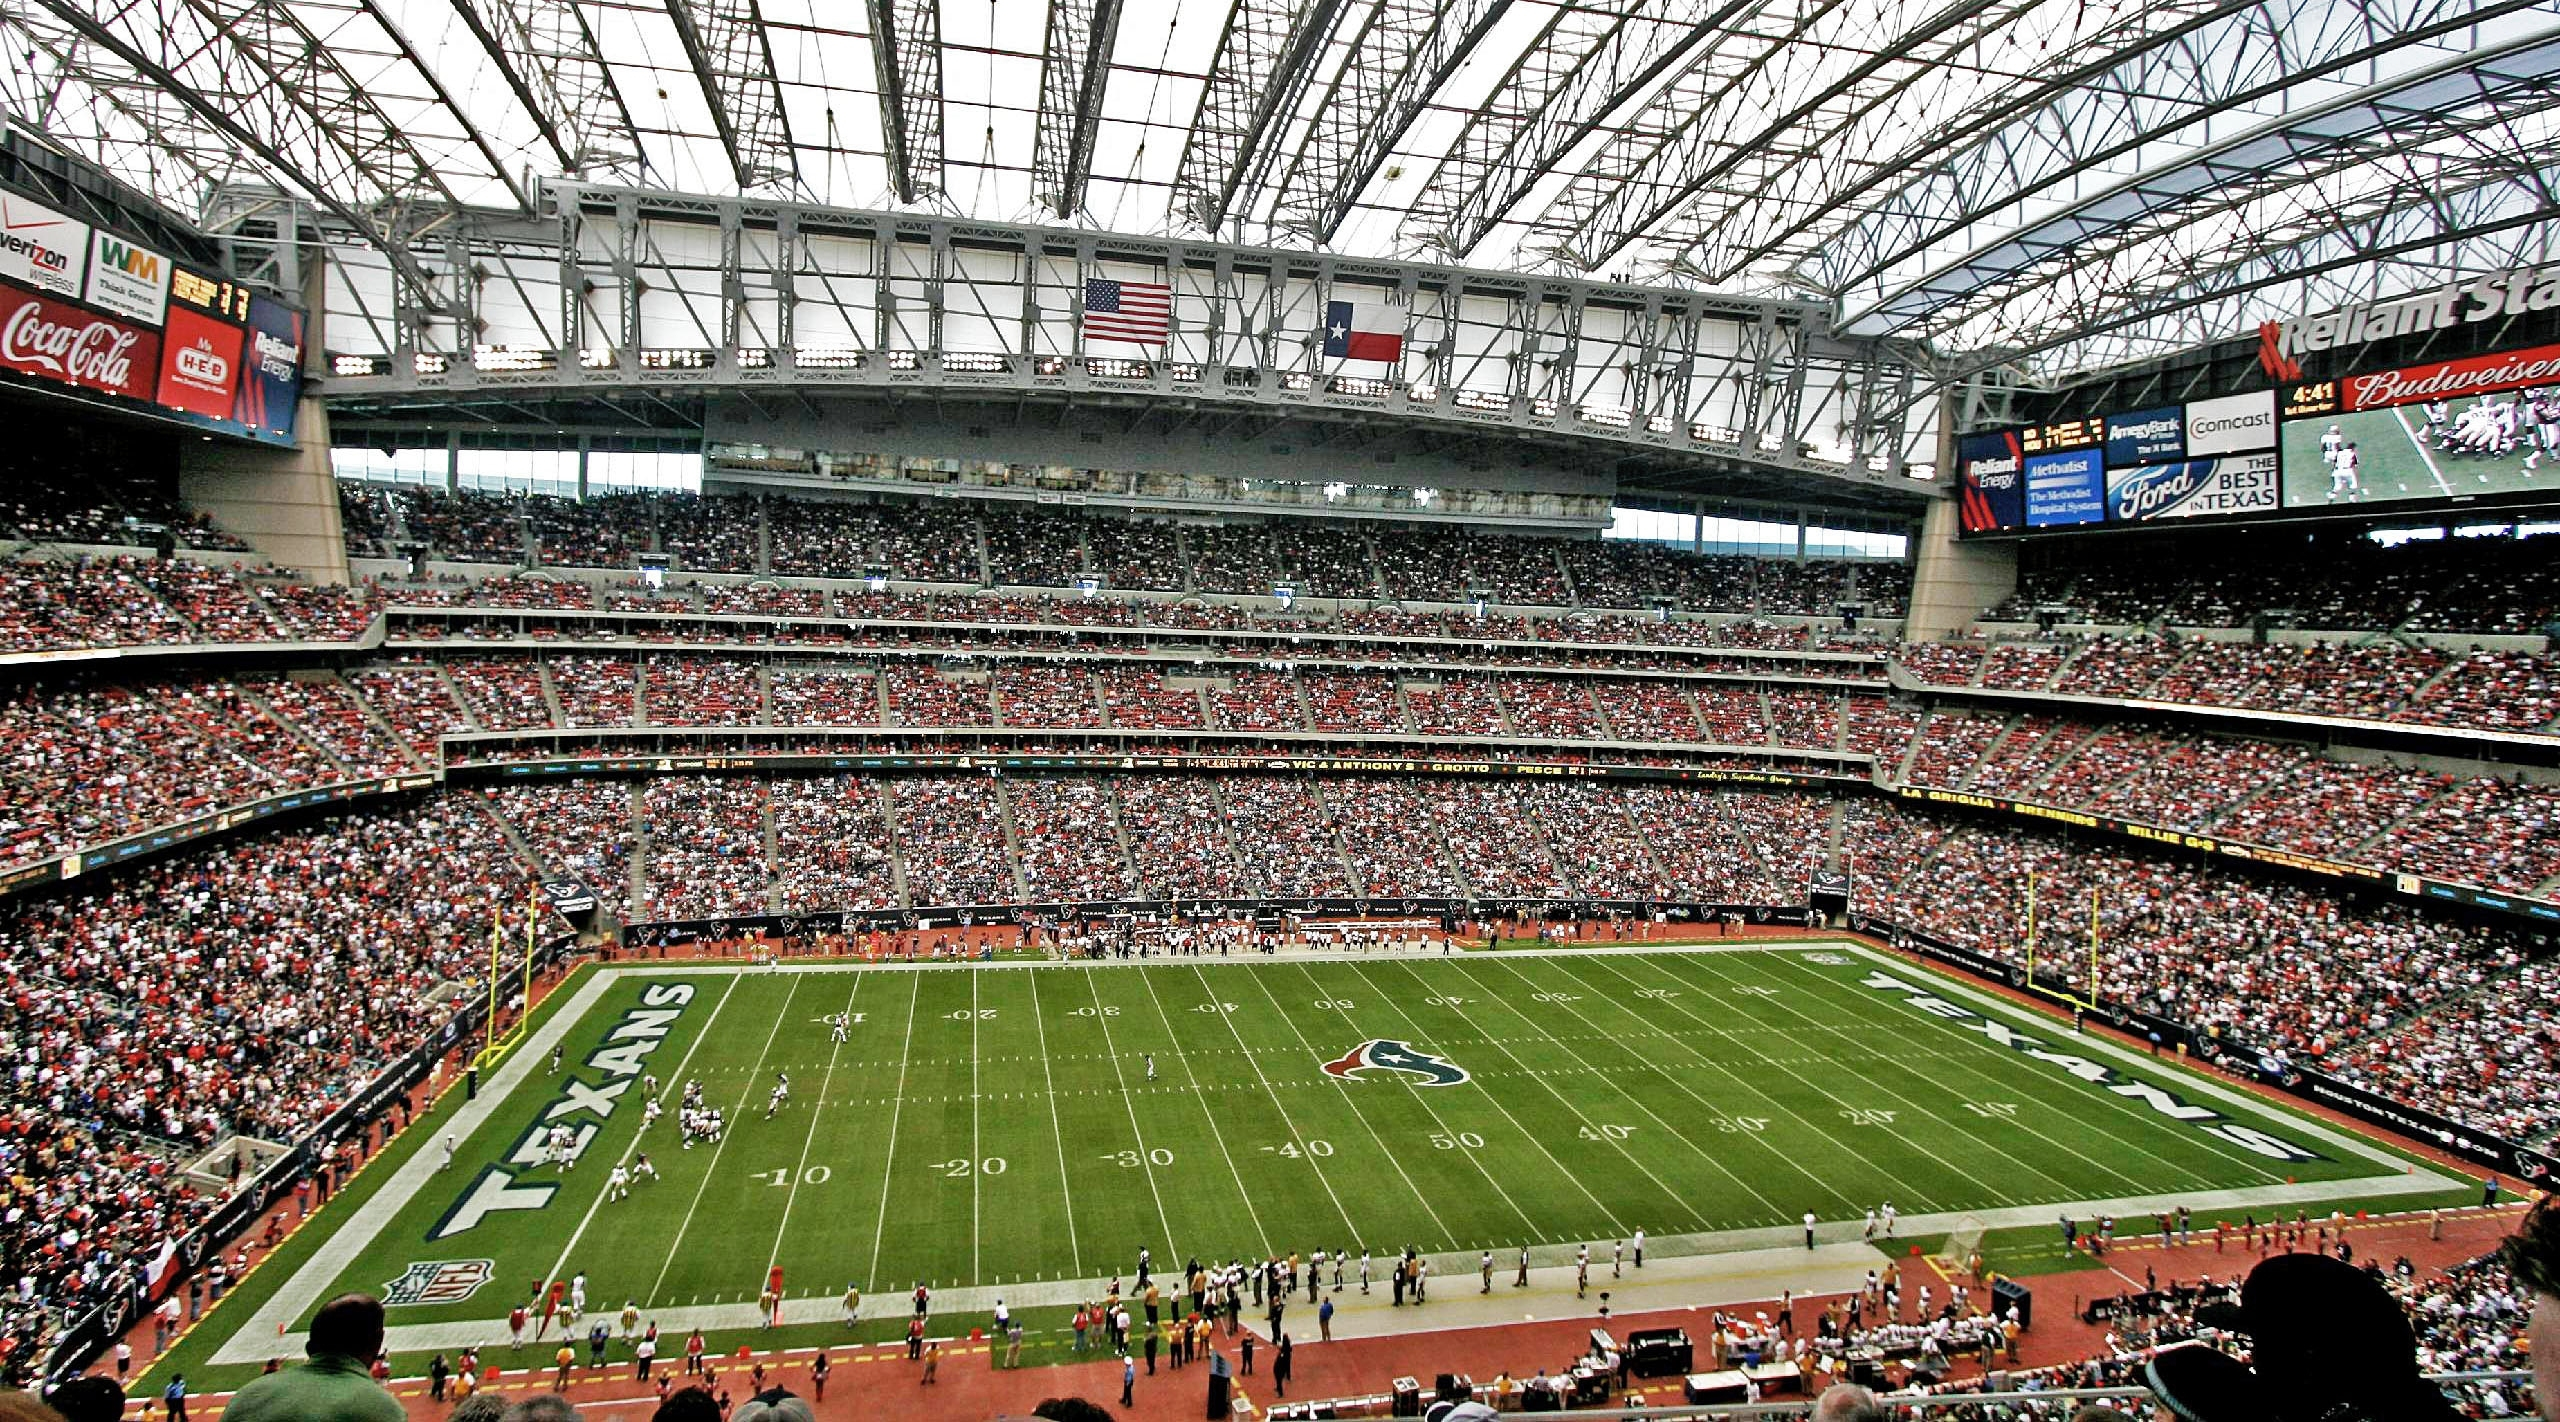 Nrg Stadium - Wikipedia within Super Bowl Seating Capacity Requirements